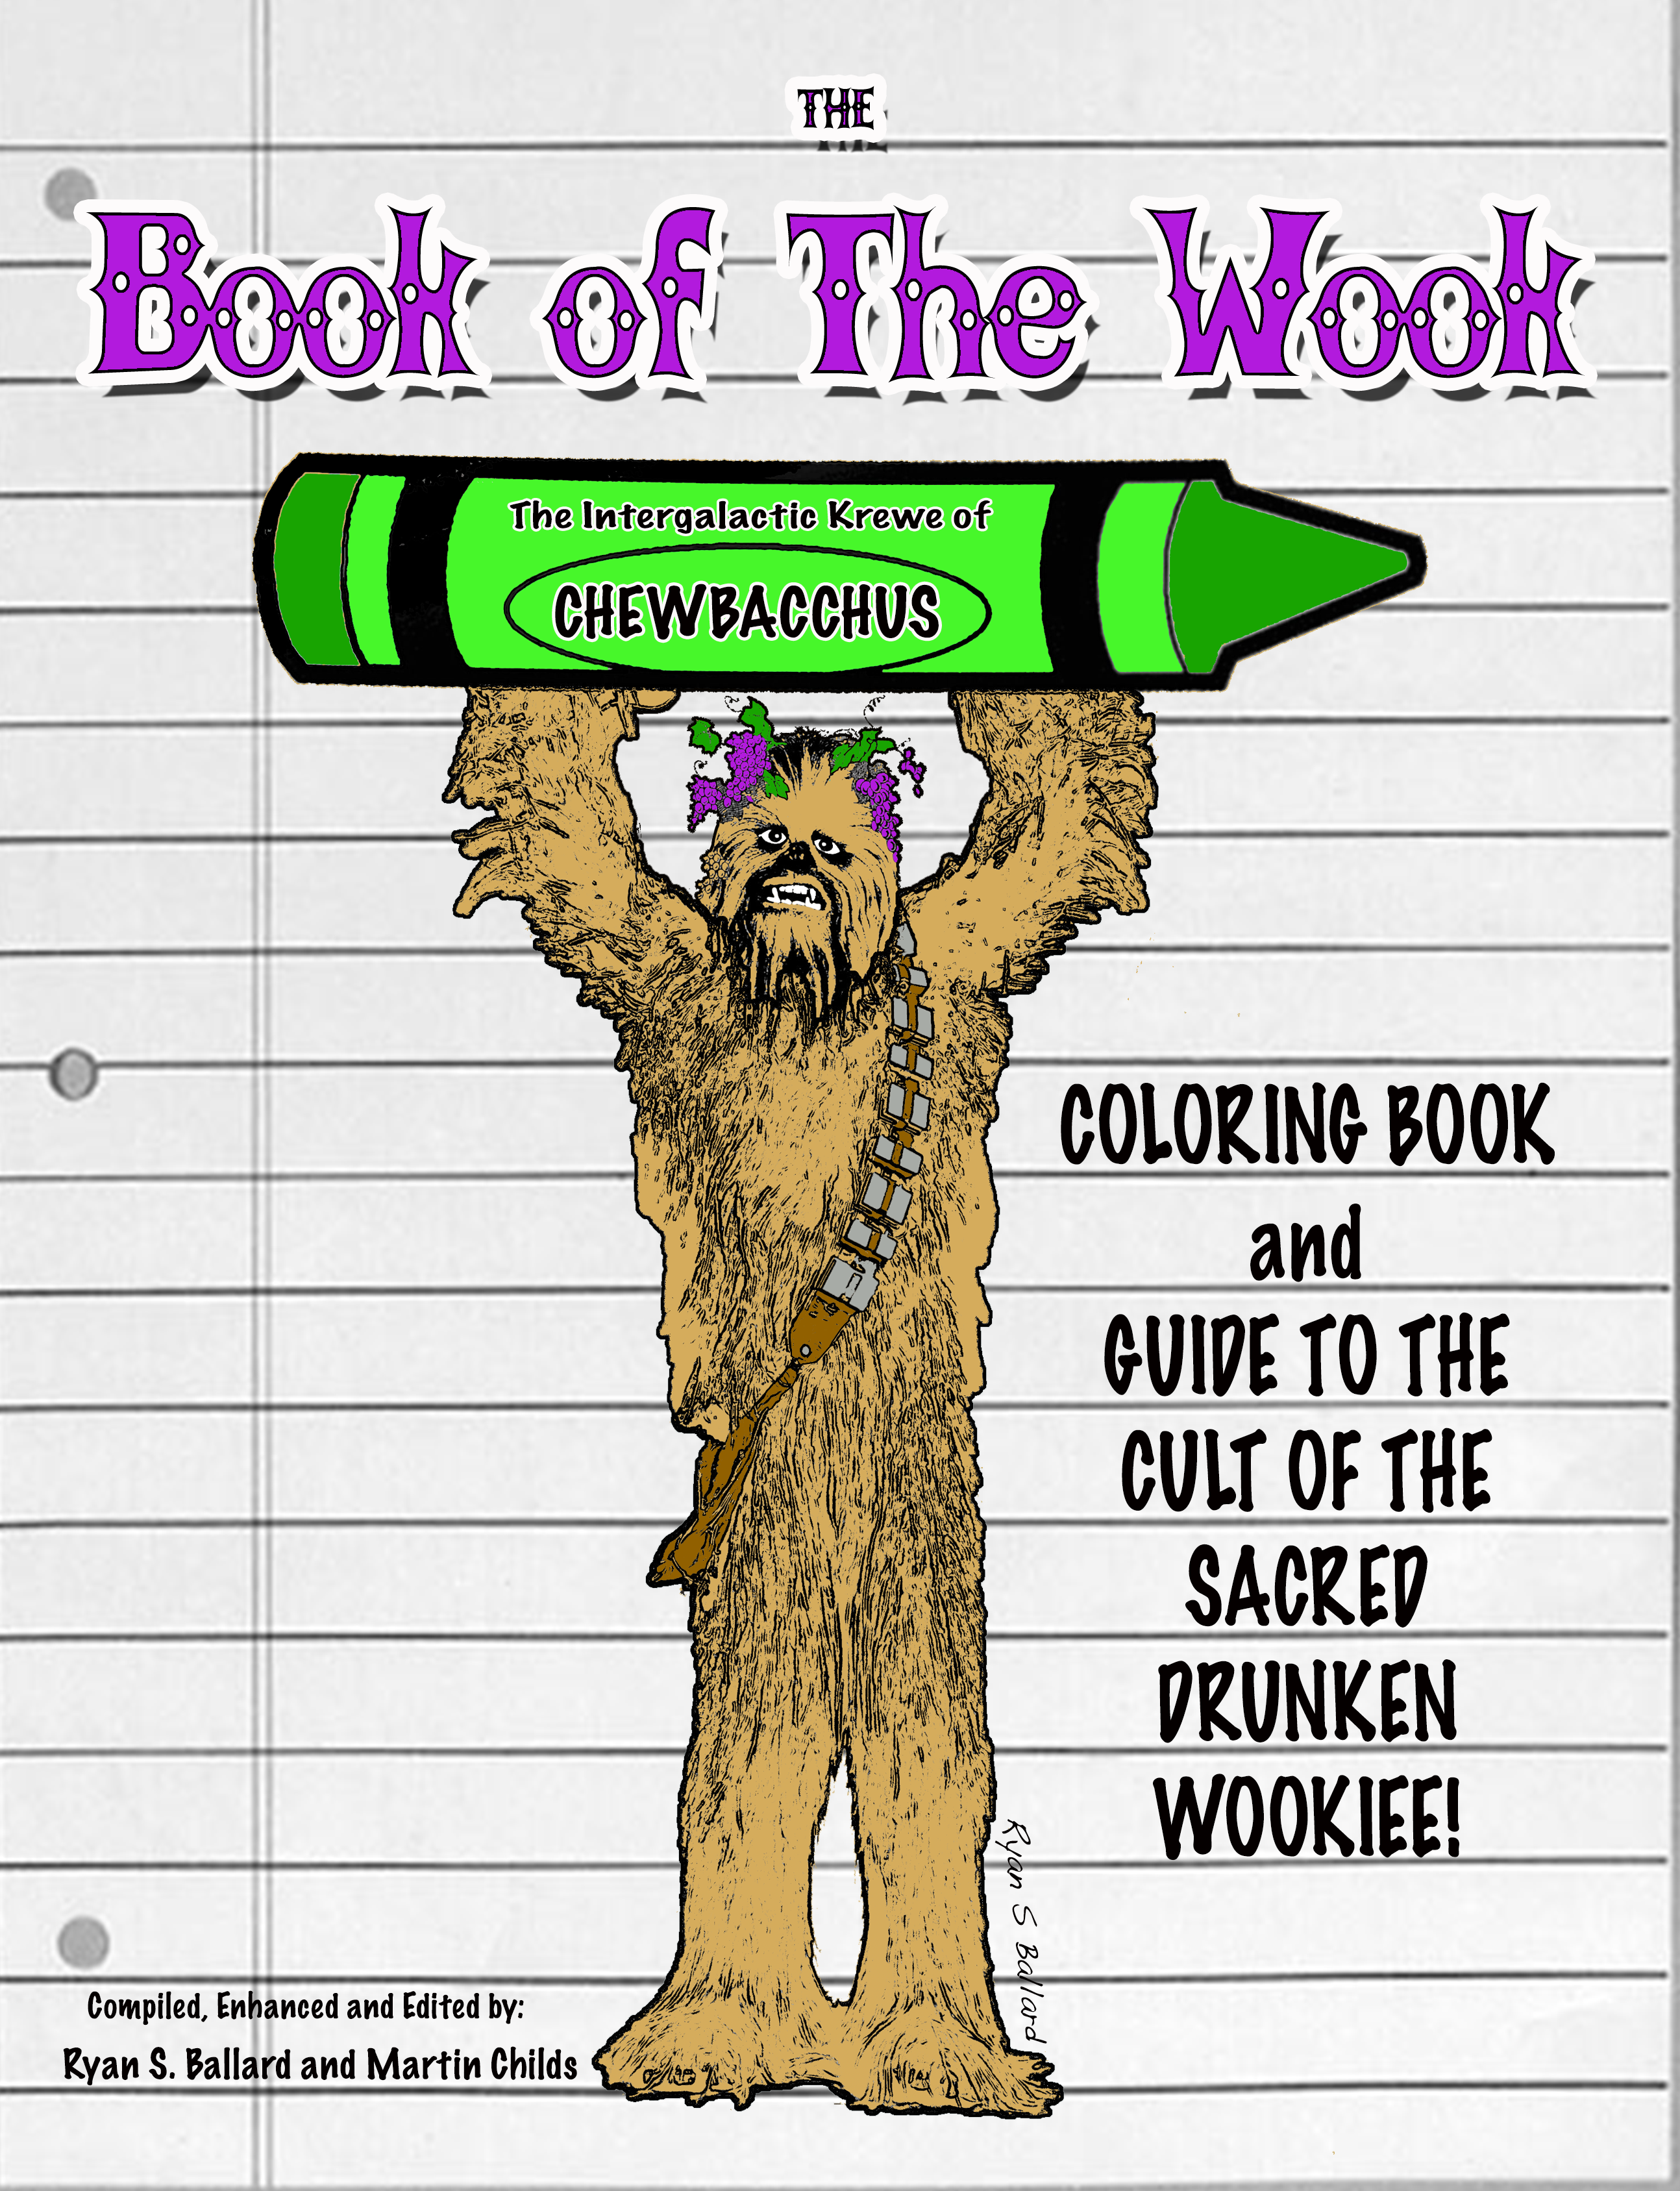 Coloring book with guide - The Book Of The Wook The Intergalactic Krewe Of Chewbacchus Coloring Book And Guide To The Cult Of The Sacred Drunken Wookiee Intergalactic Krewe Of